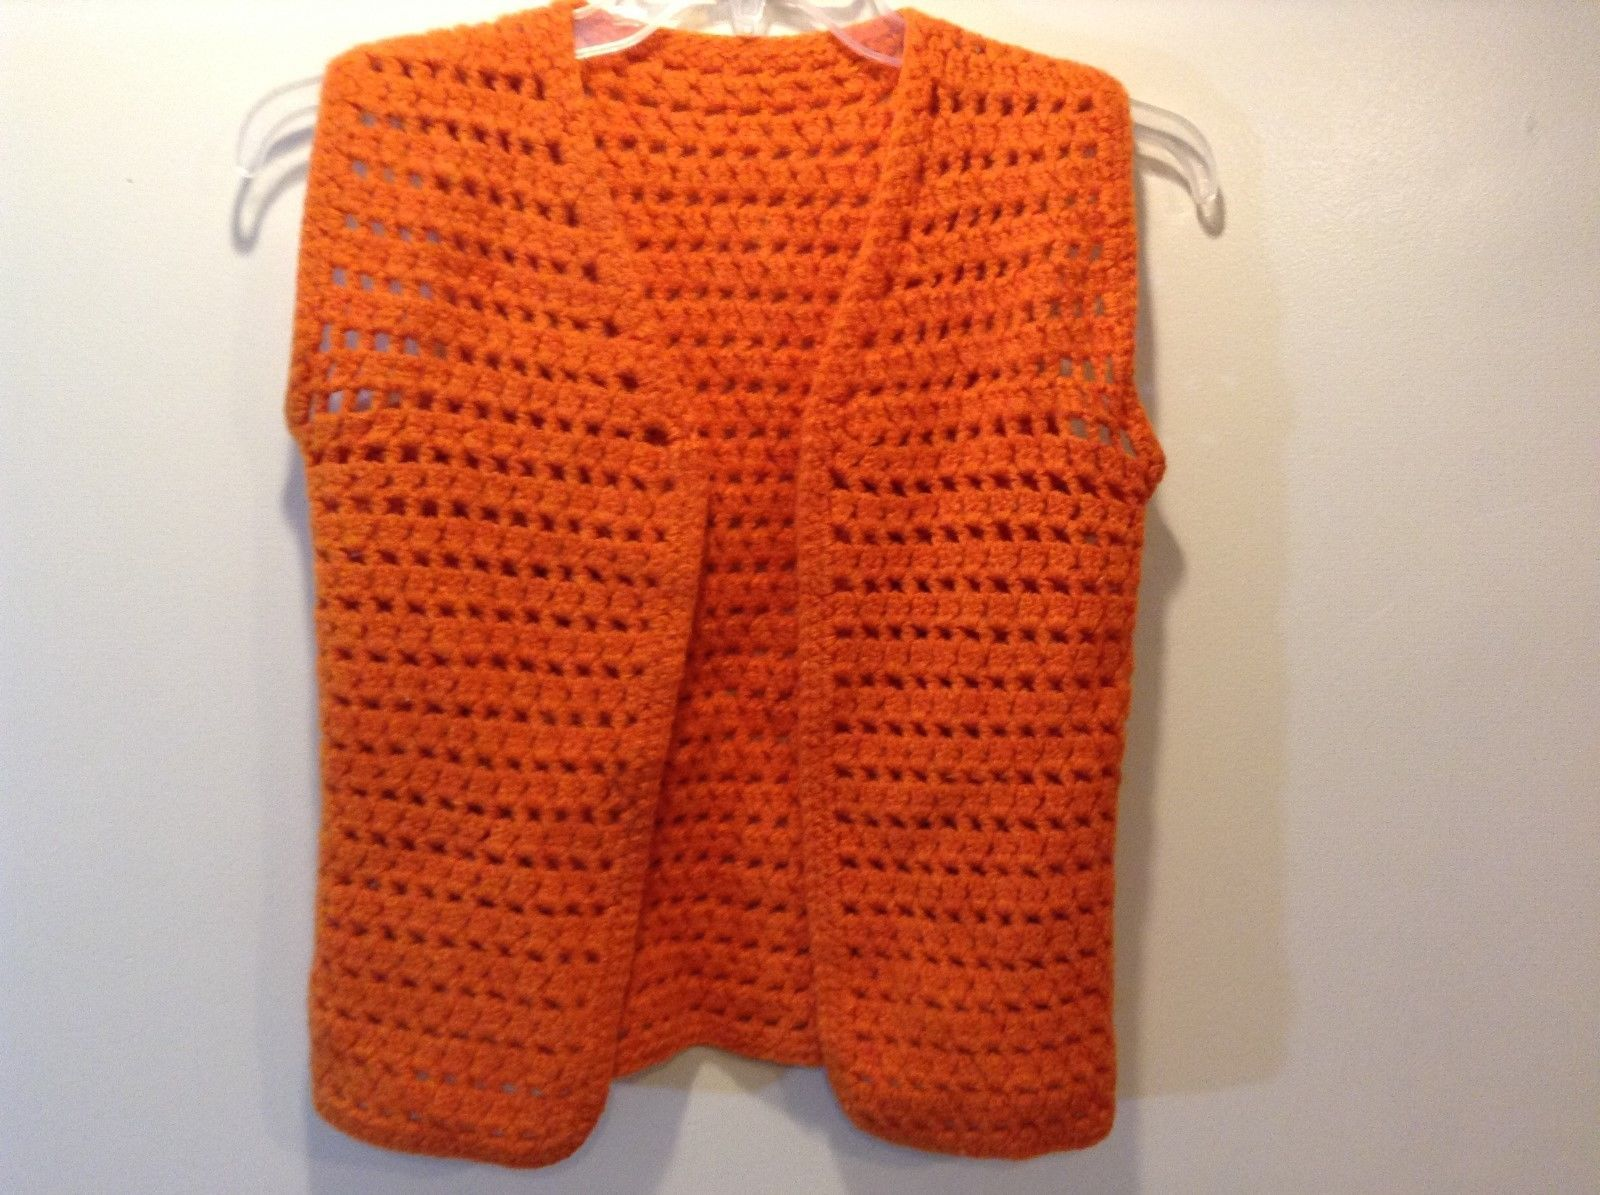 Ladies Orange Loose Knit Sleeveless Sweater-vest